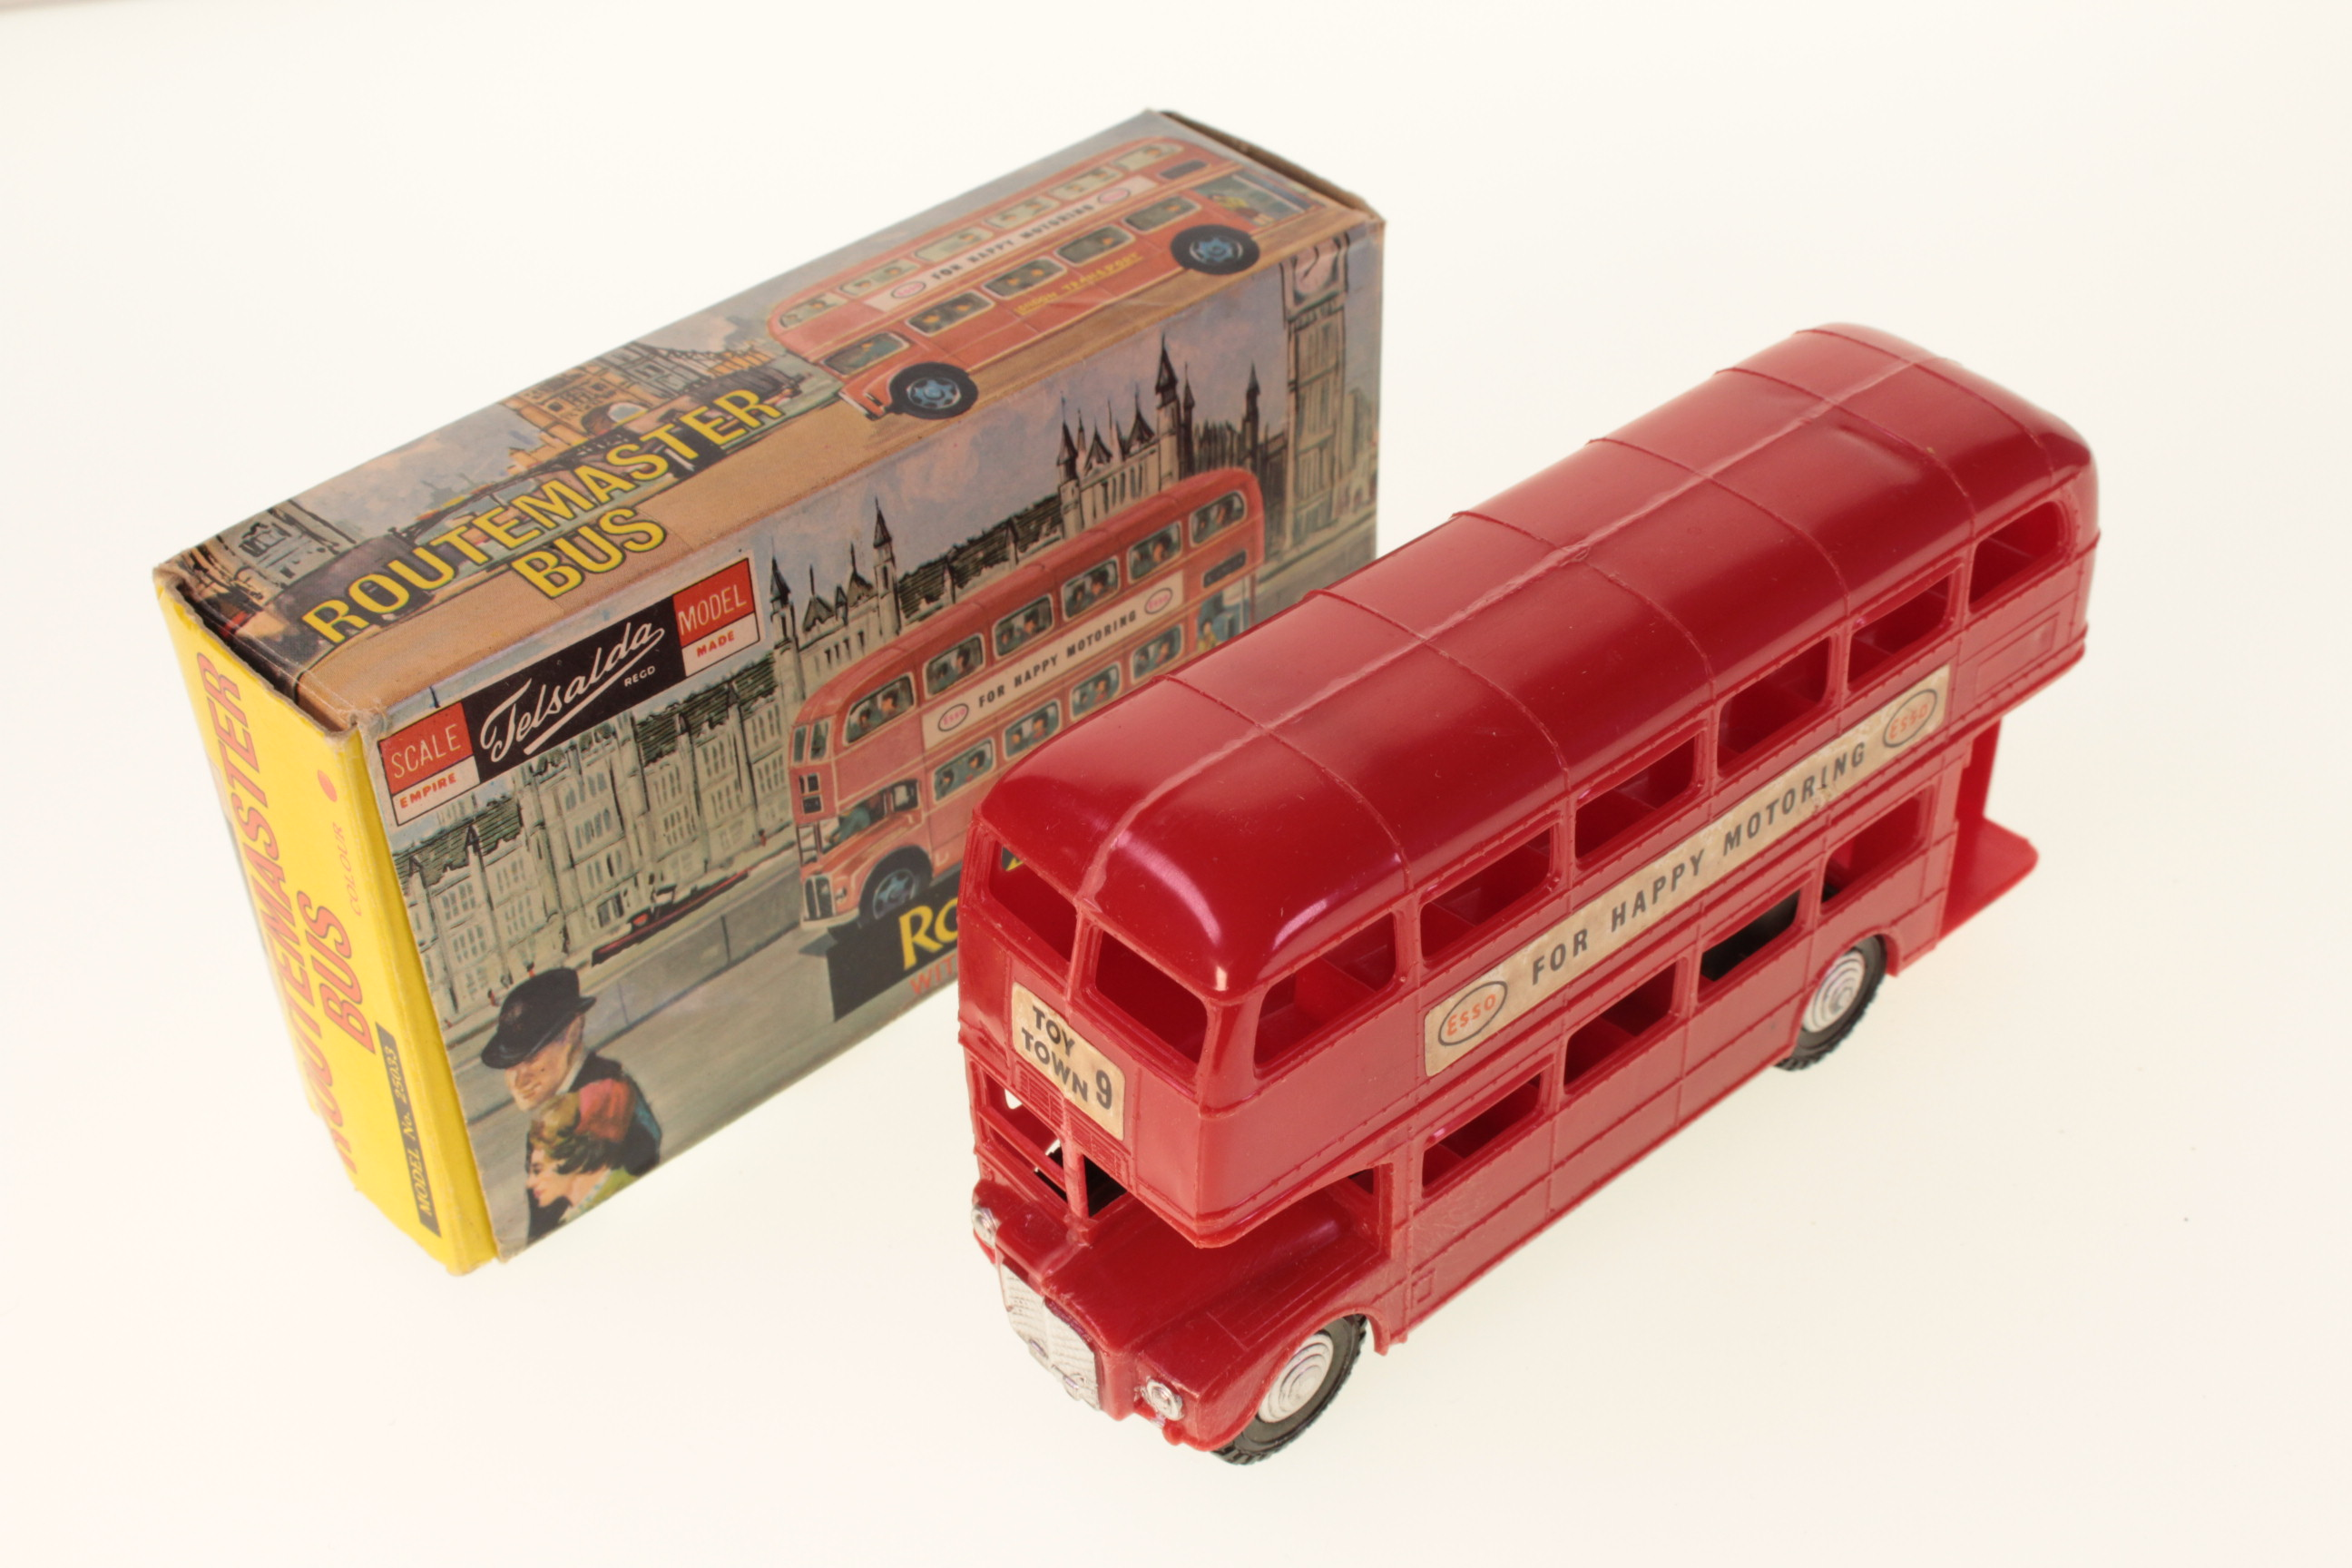 Picture Gallery for Telsalda 25033 Routemaster Bus